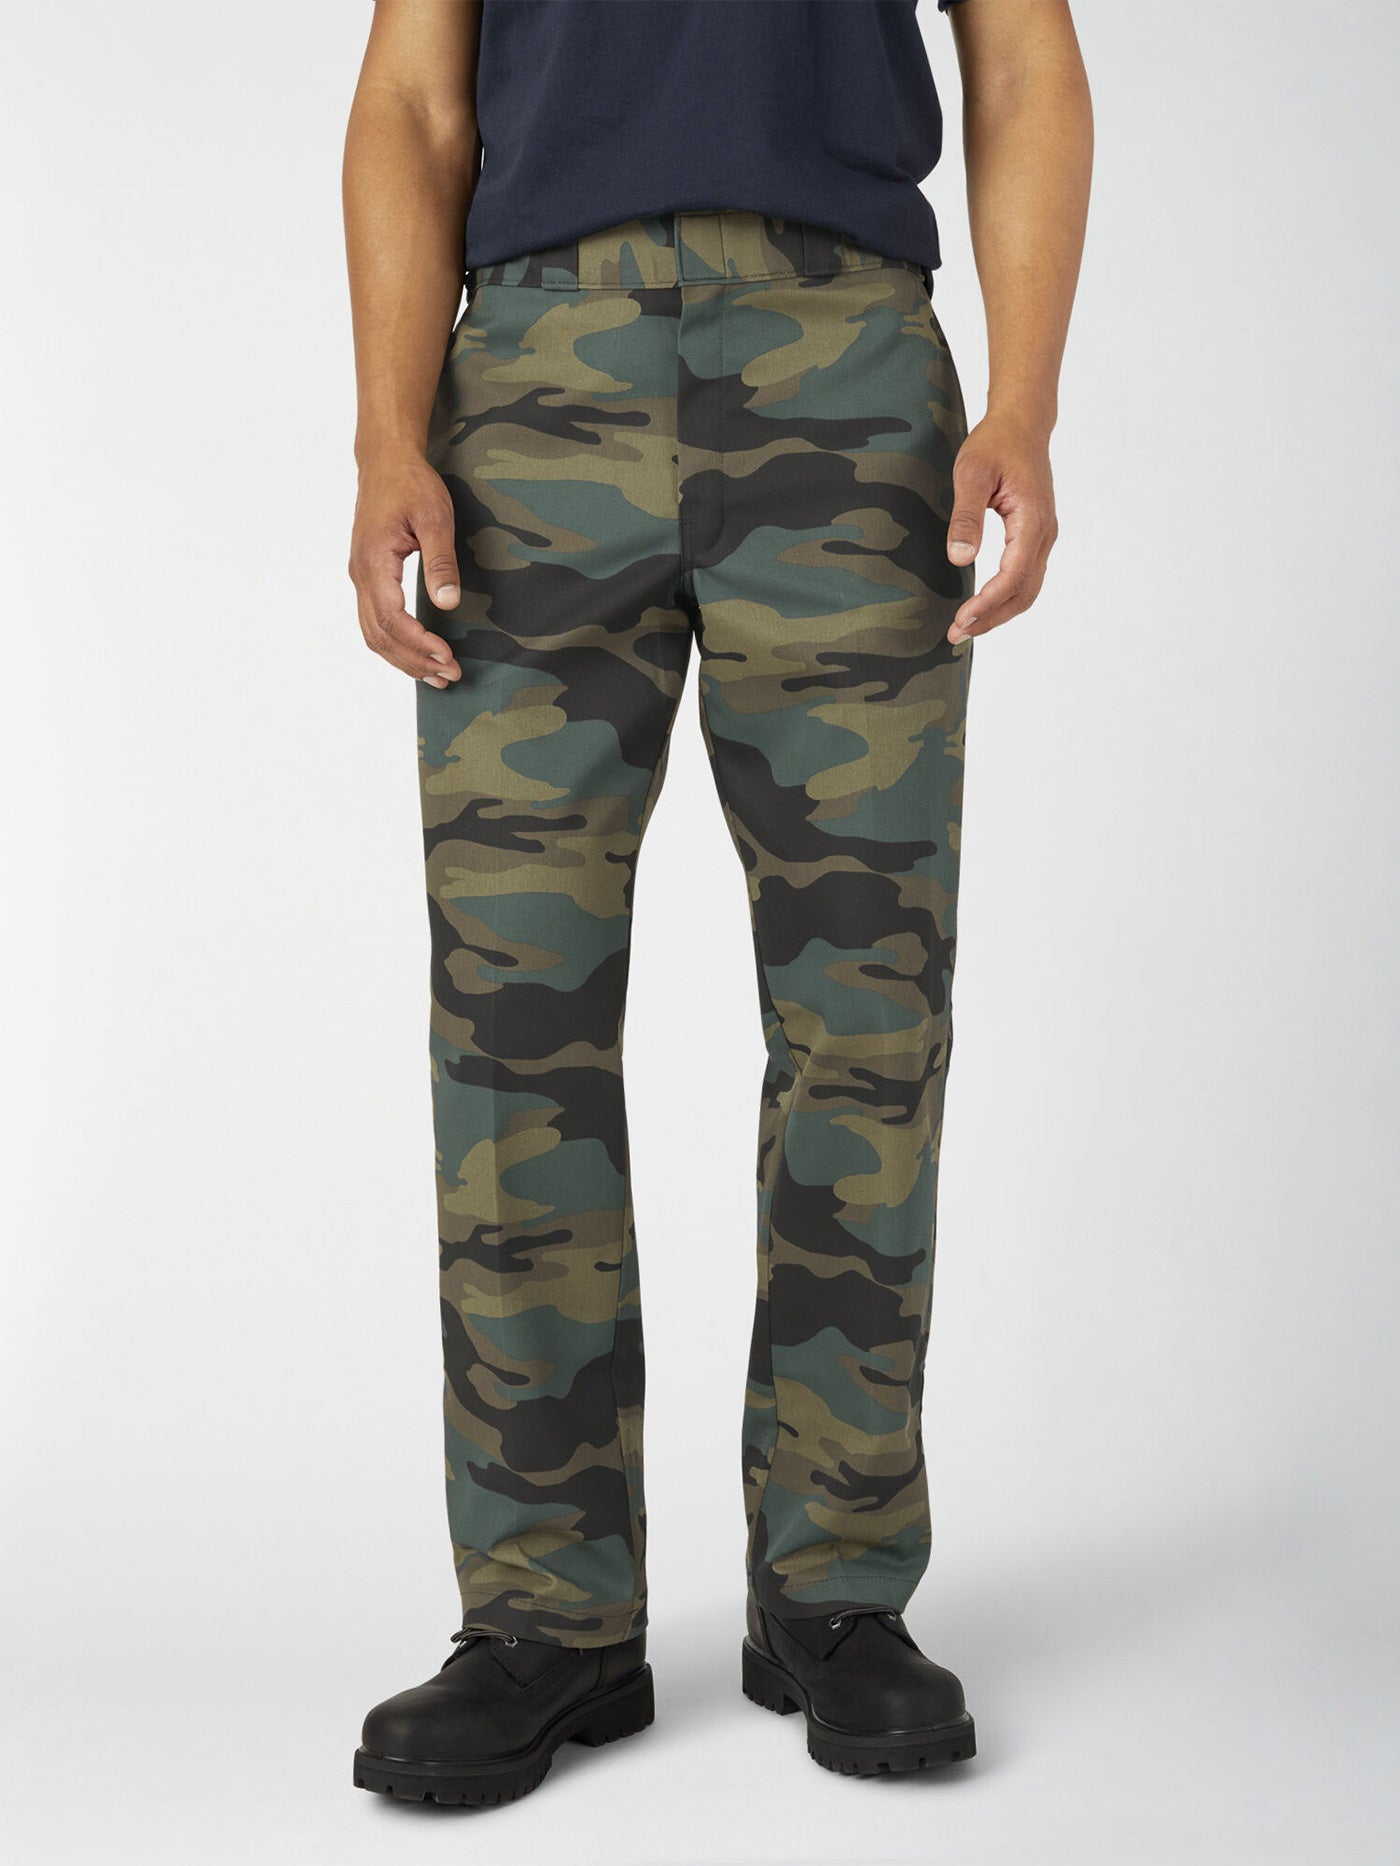 HUNTER GREEN CAMO (HRC)